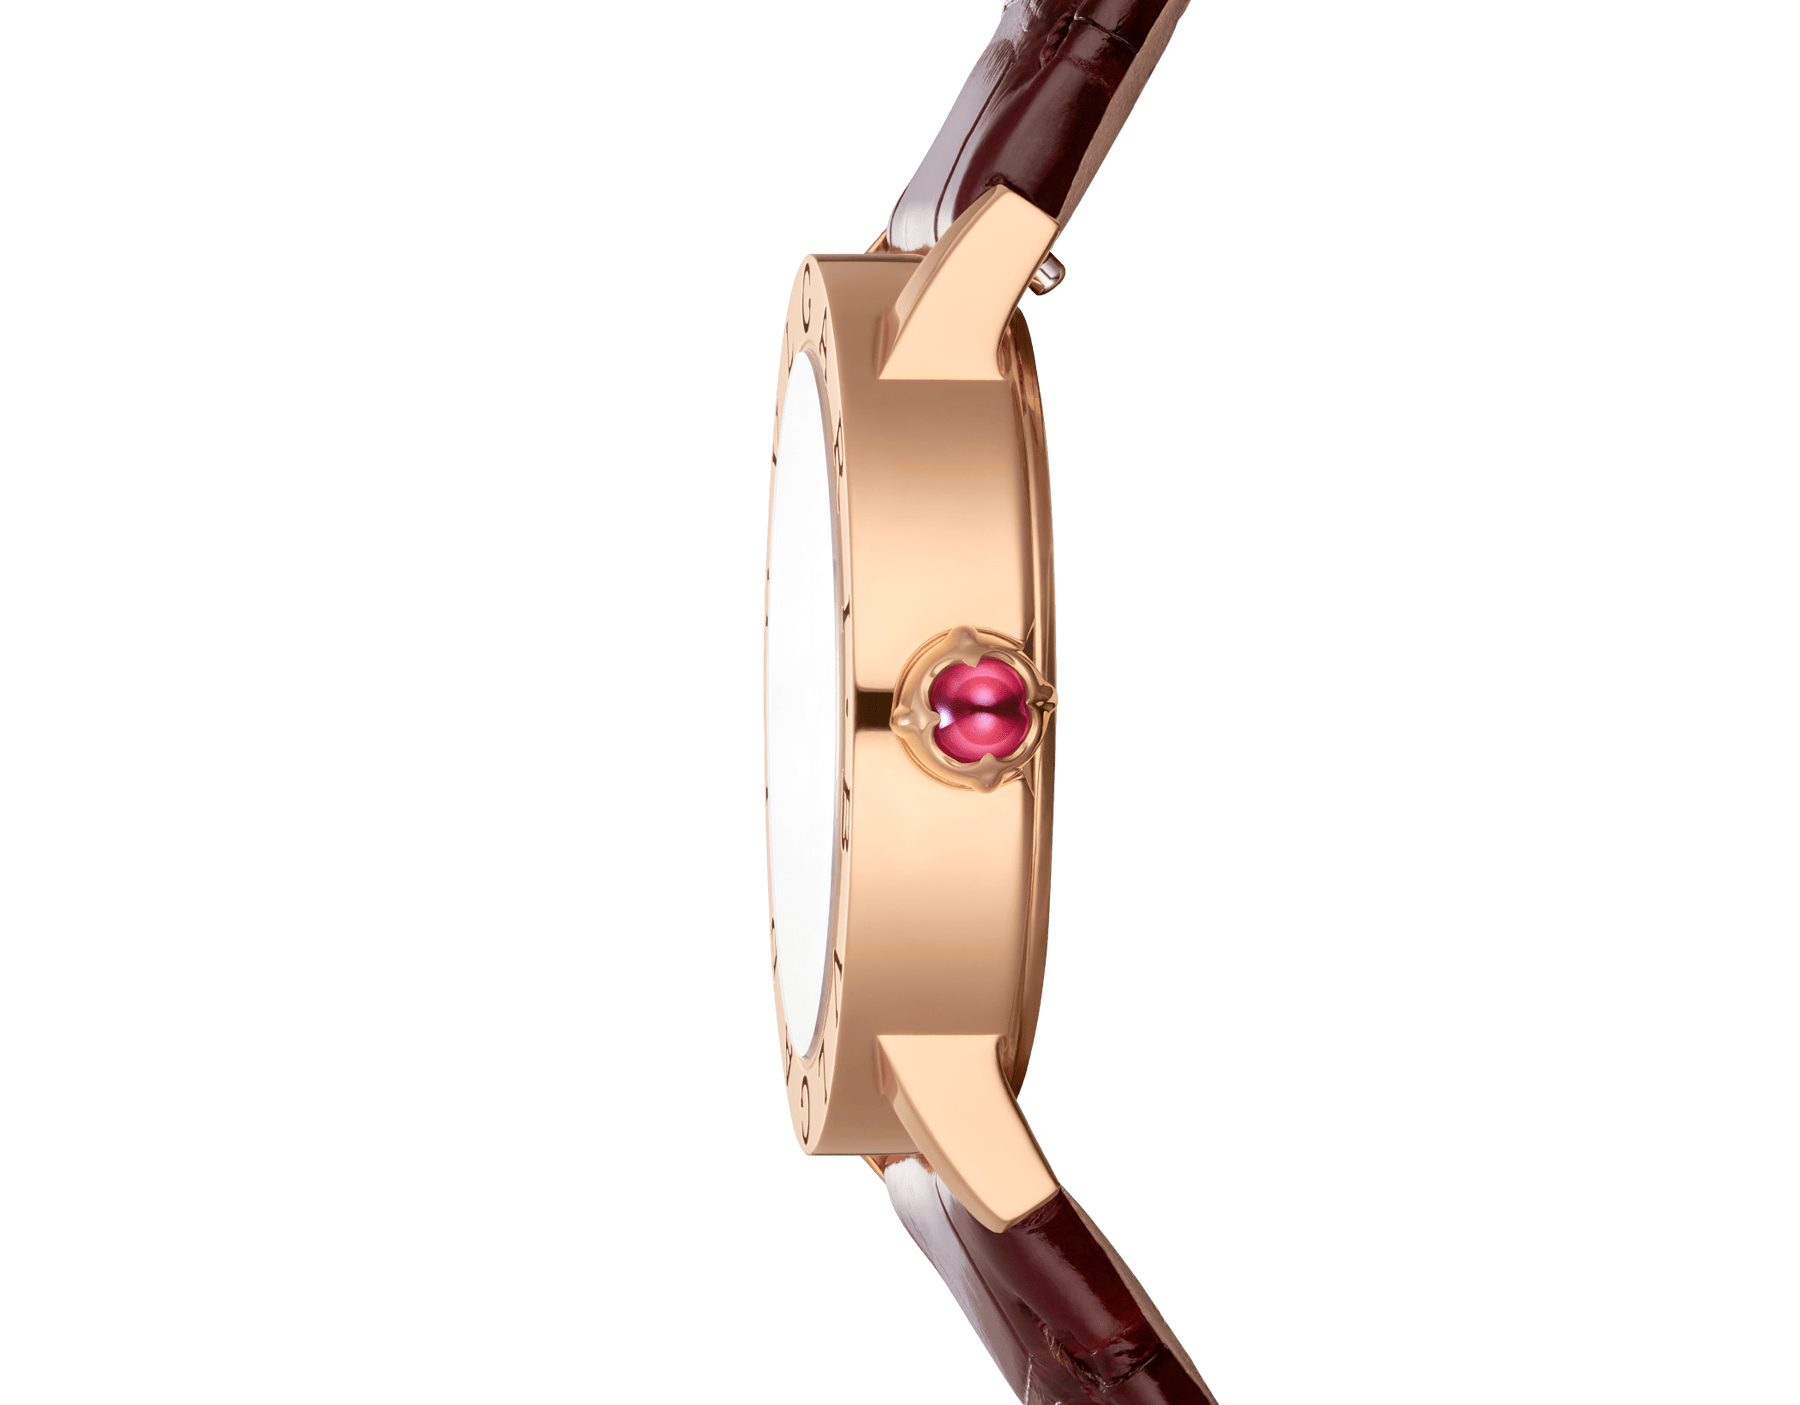 BVLGARI BVLGARI watch with 18 kt rose gold case, white mother-of-pearl dial, diamond indexes and shiny brown alligator bracelet 102751 image 3